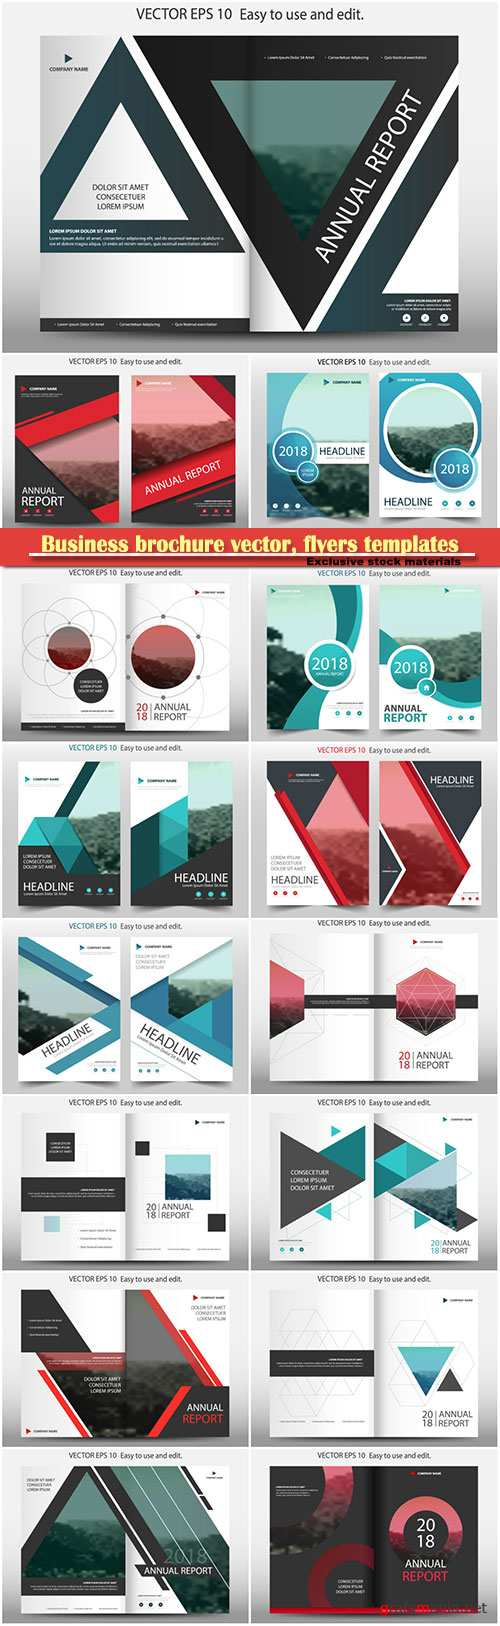 Business brochure vector, flyers templates # 80